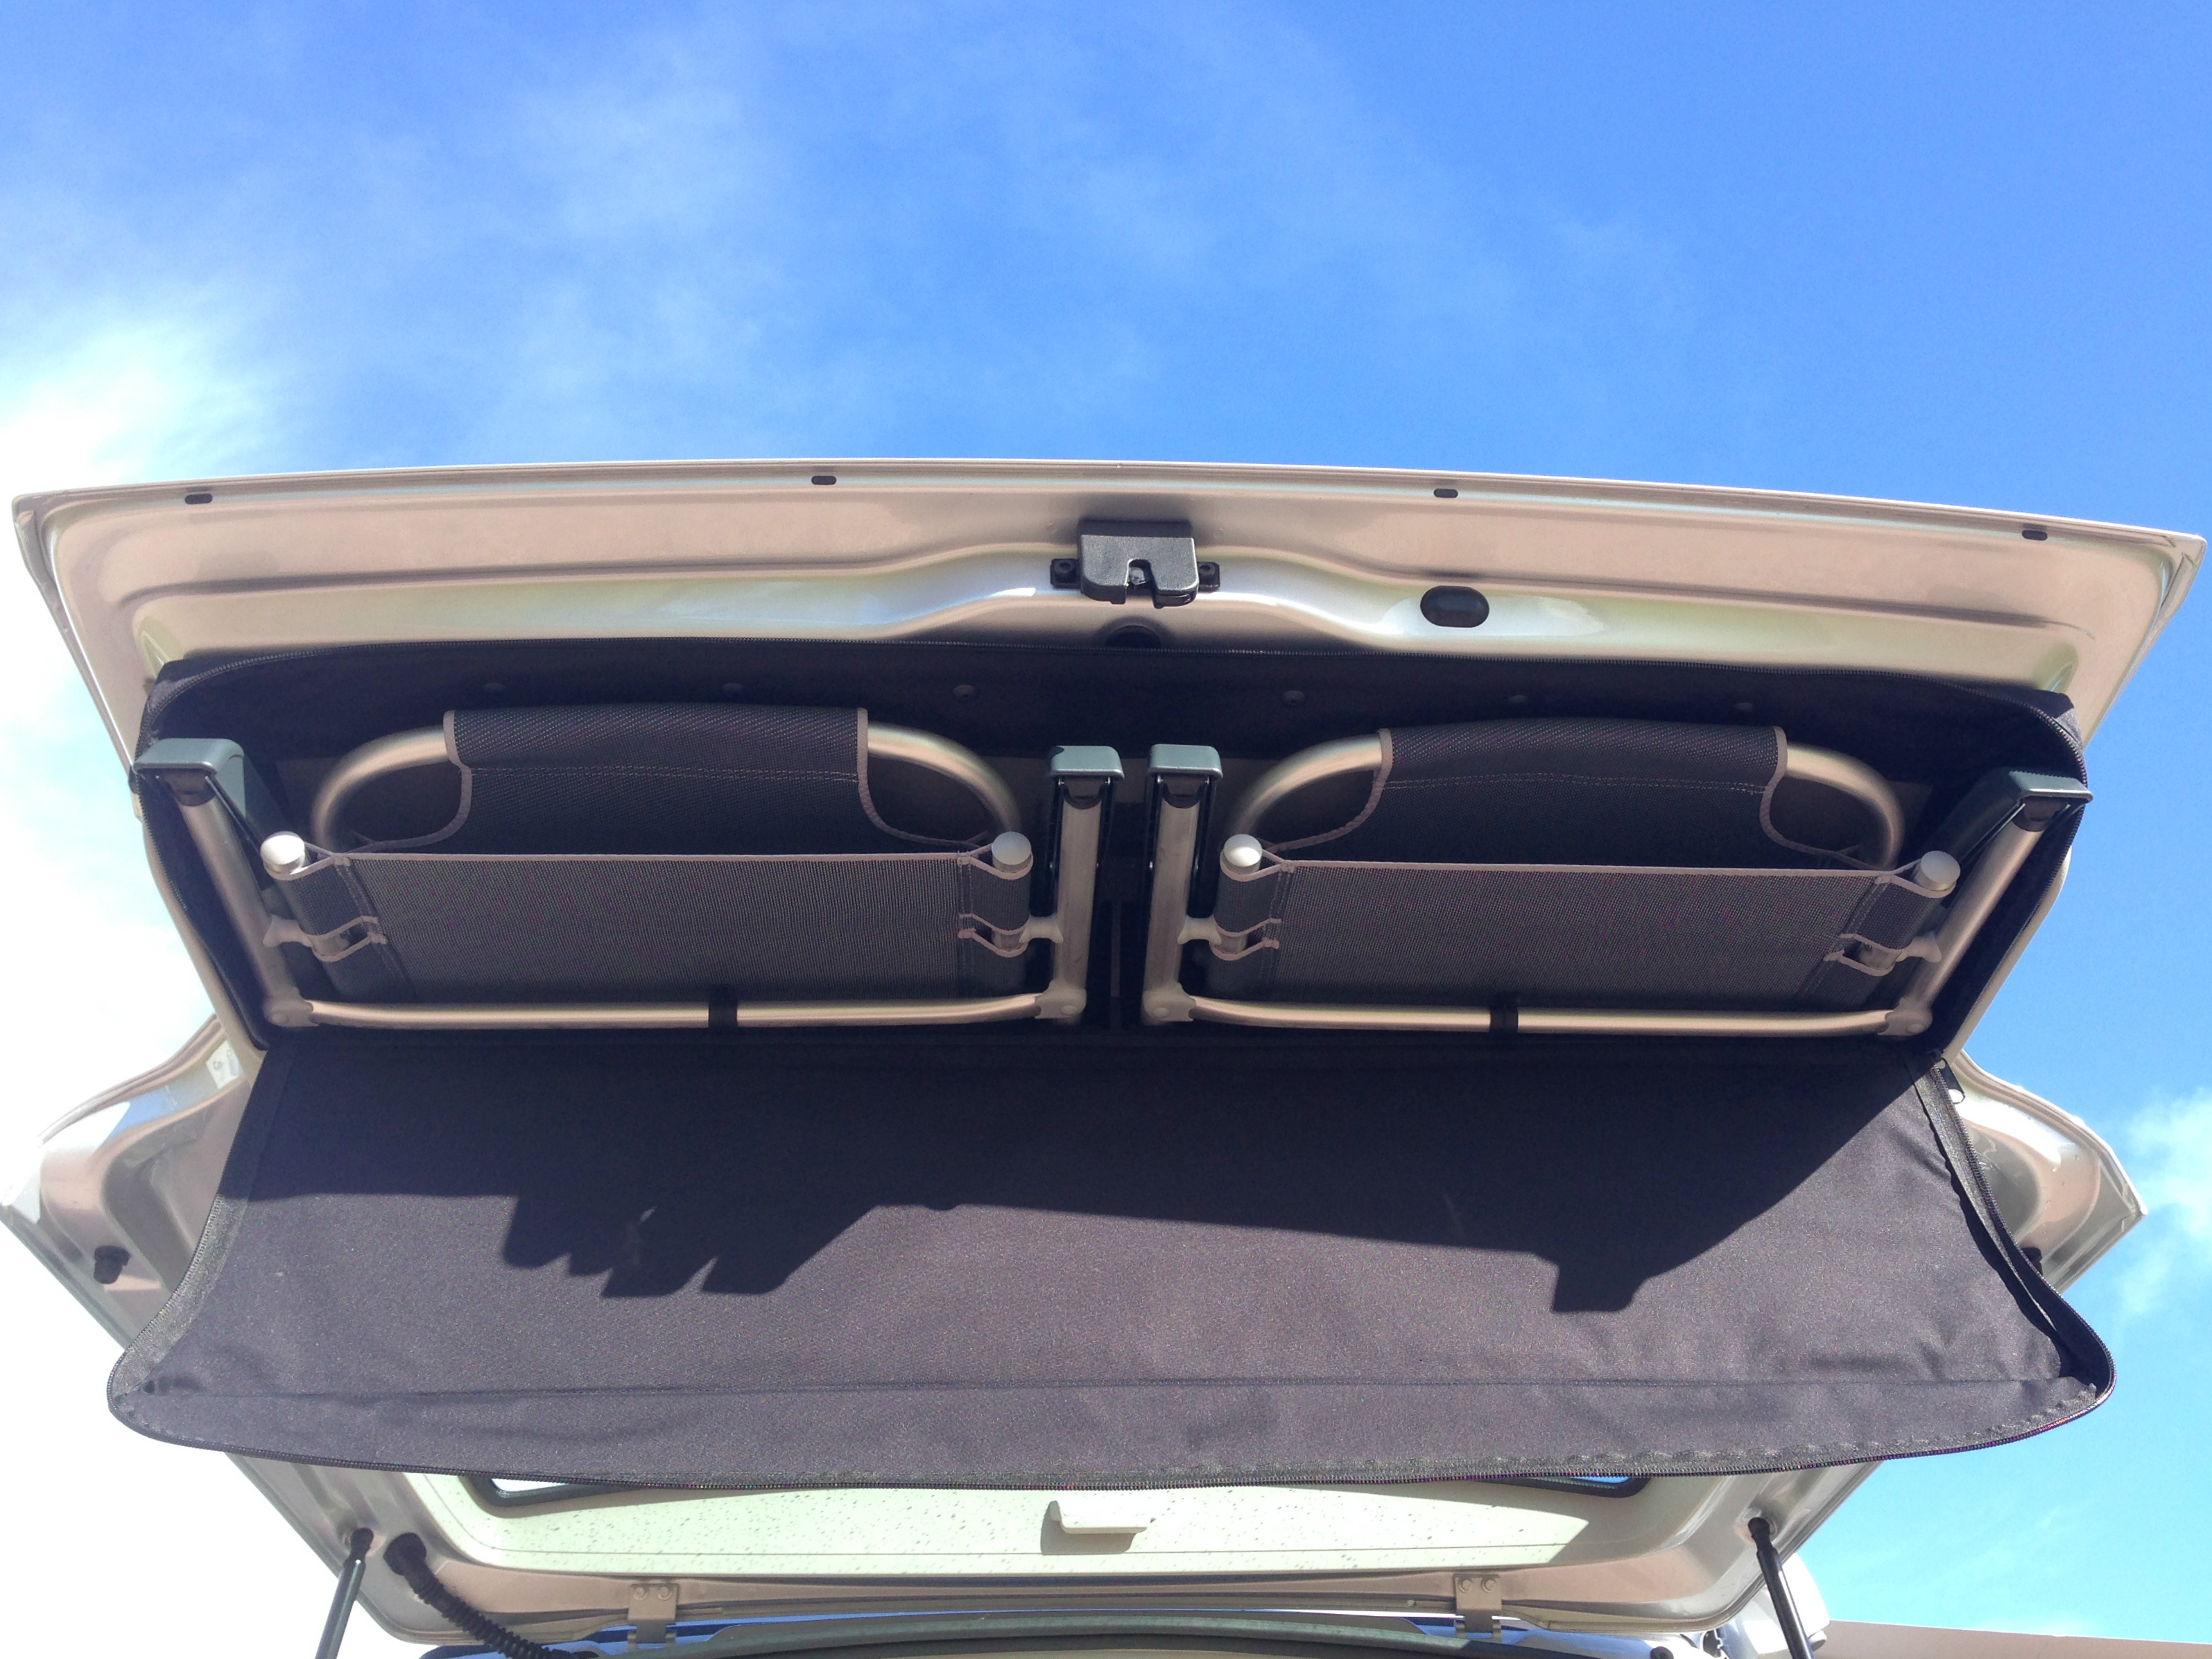 ... Picnic Chairs In Tailgate Of VW California T6 ...